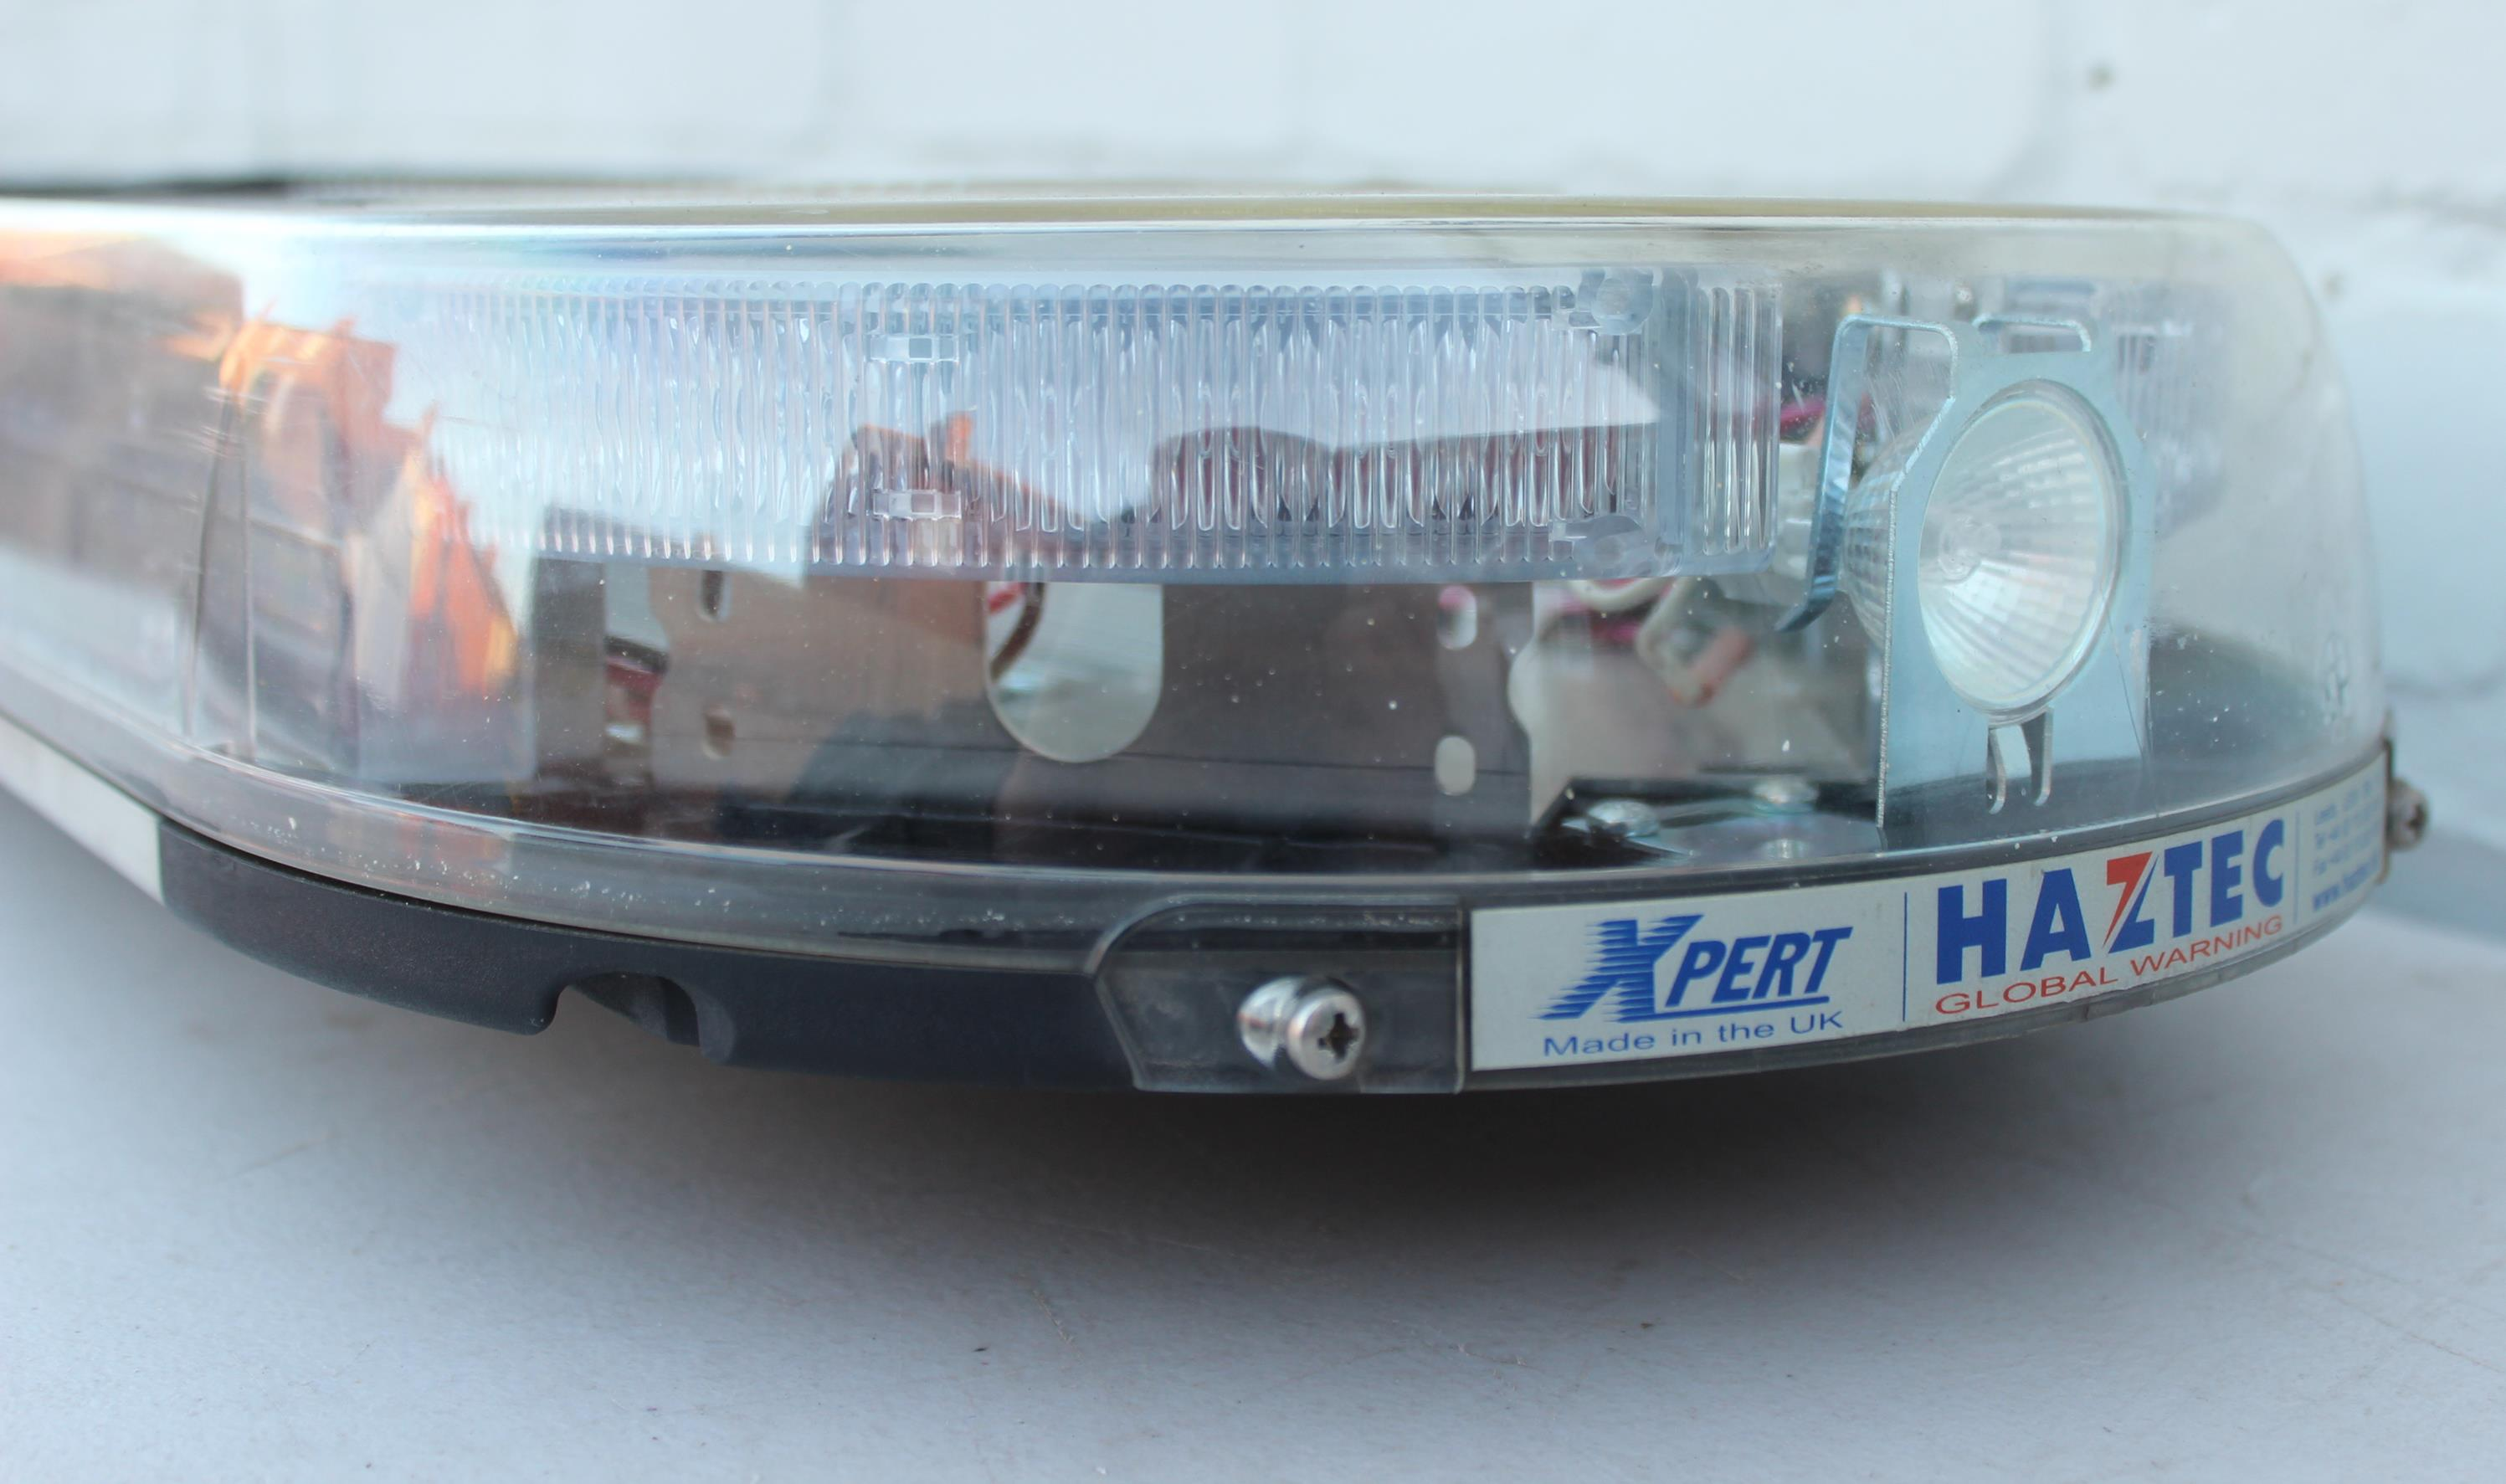 Haztec Xpert LED lightbar and contoller